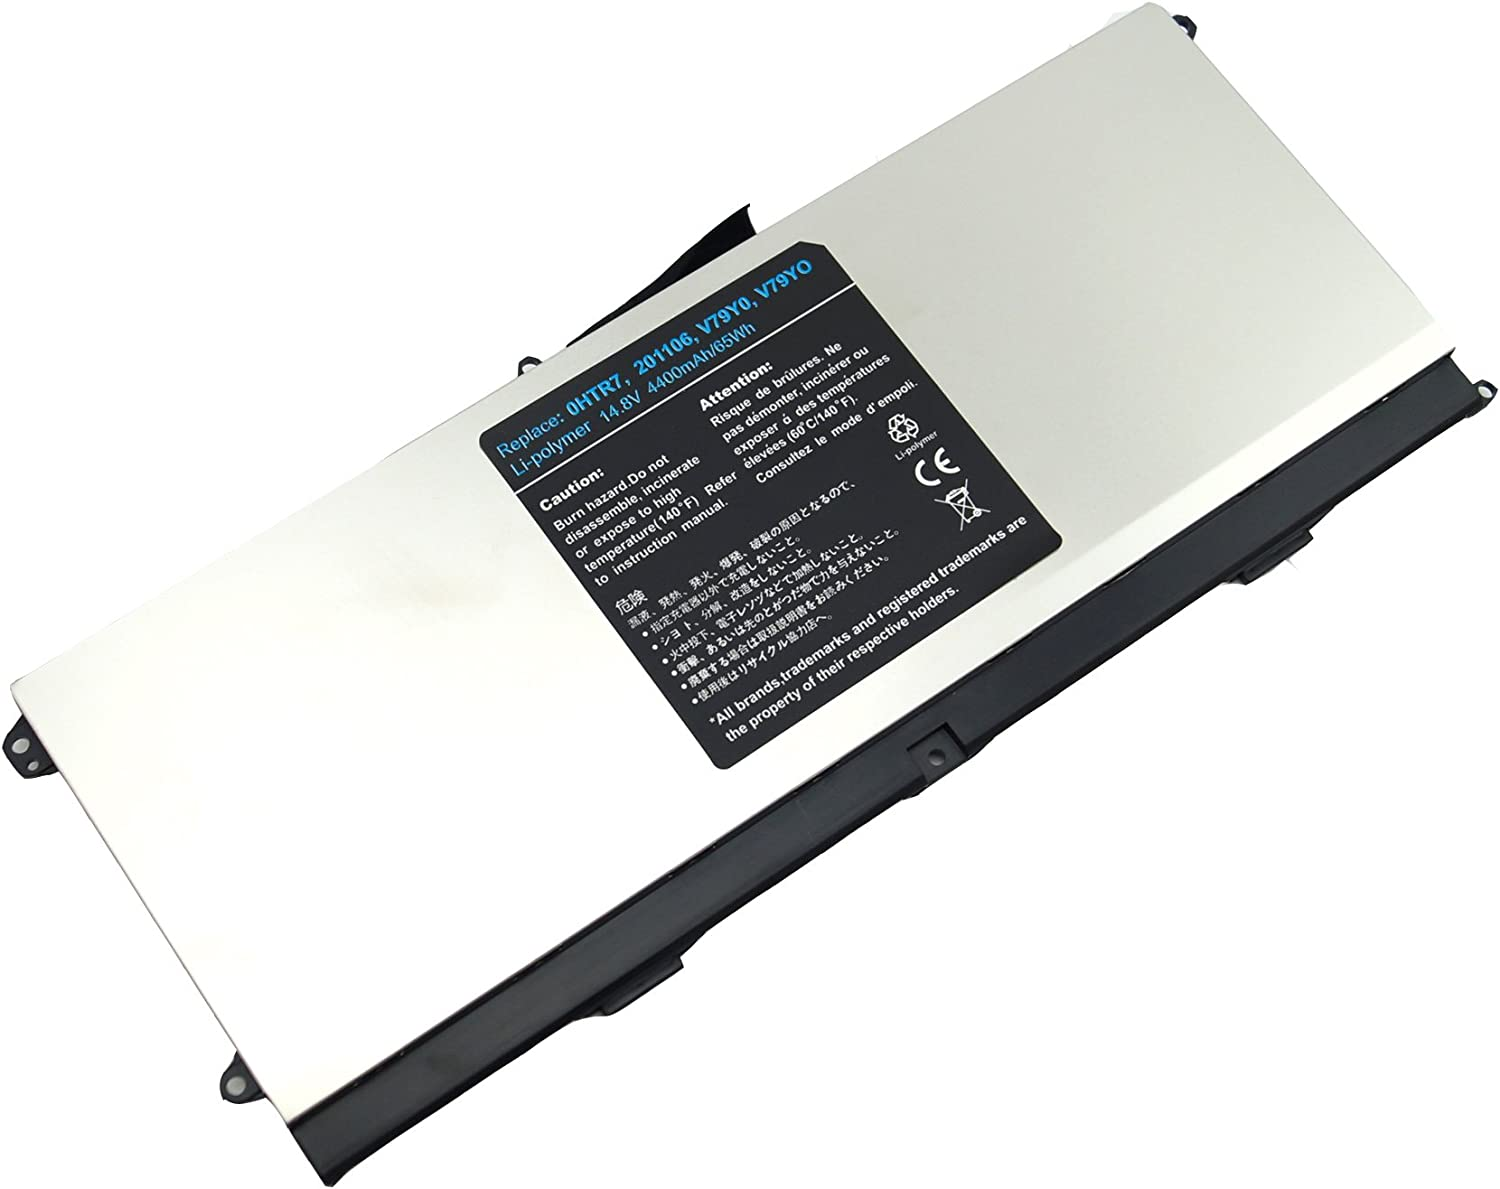 LQM 14.8V 4400mAh/65Wh New Laptop Battery for Dell XPS 15z L511Z,Compatible P/N:0HTR7 0NMV5C NMV5C 075WY2